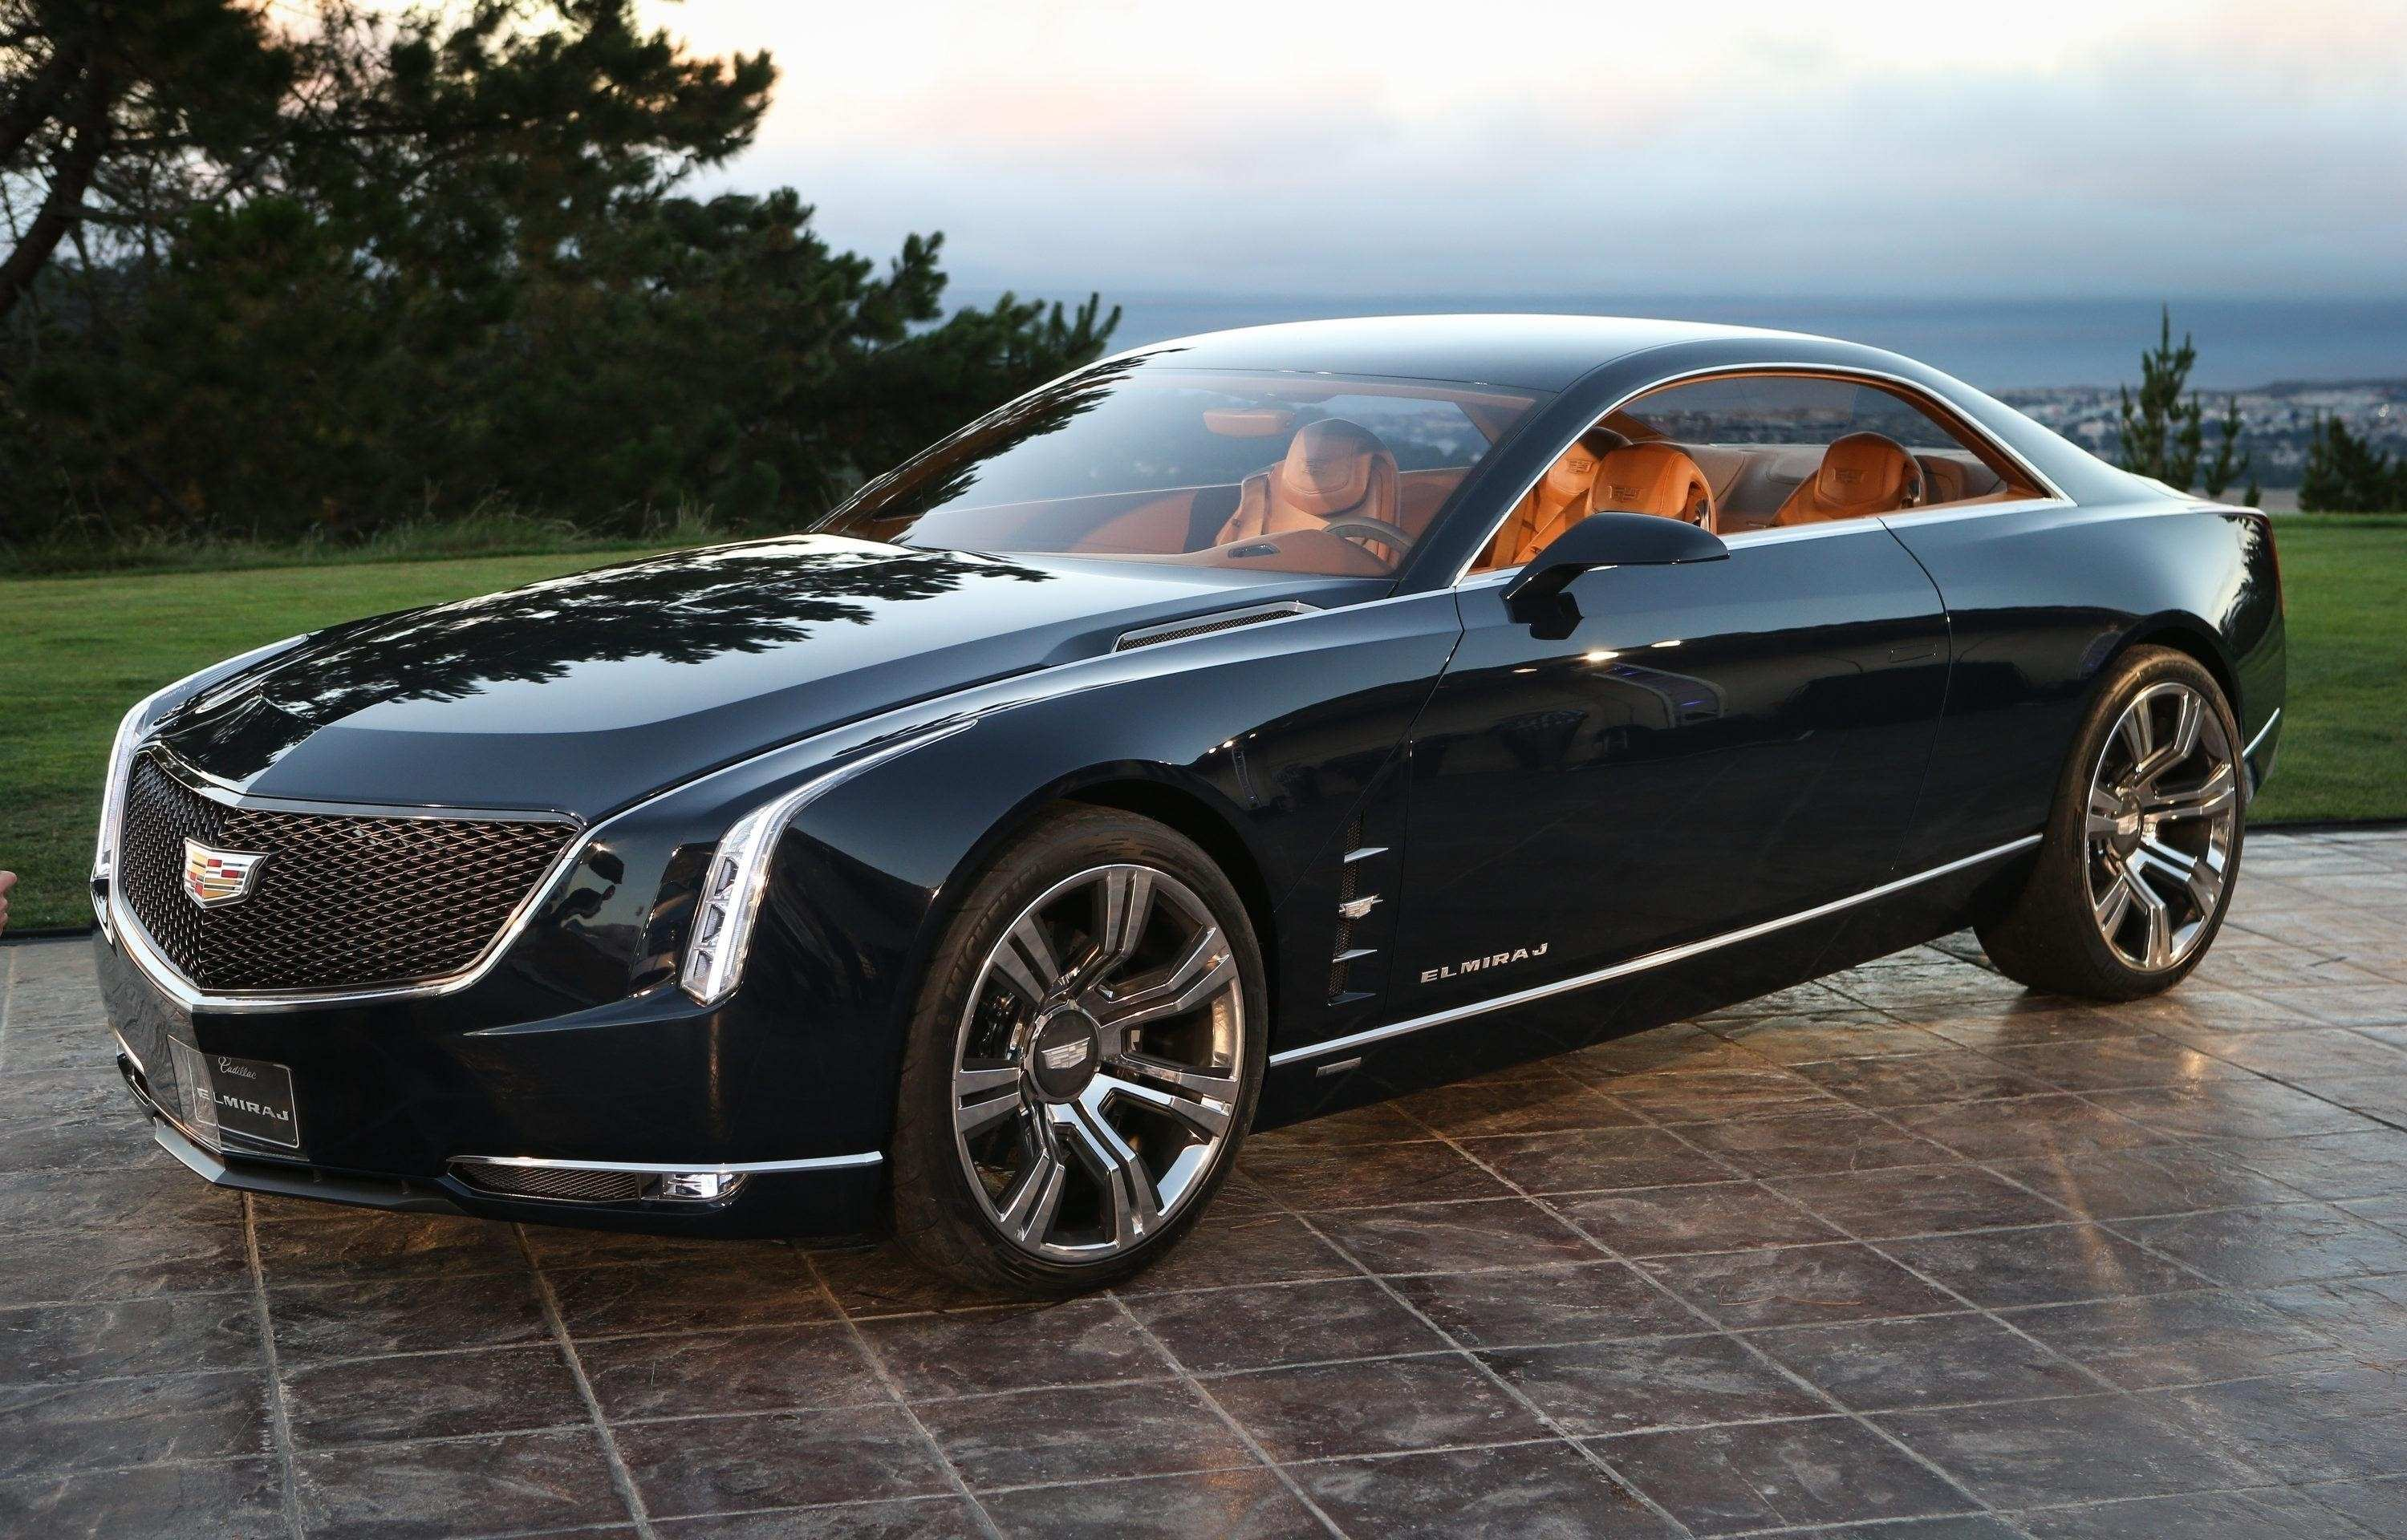 68 New 2019 Cadillac Coupe Picture by 2019 Cadillac Coupe